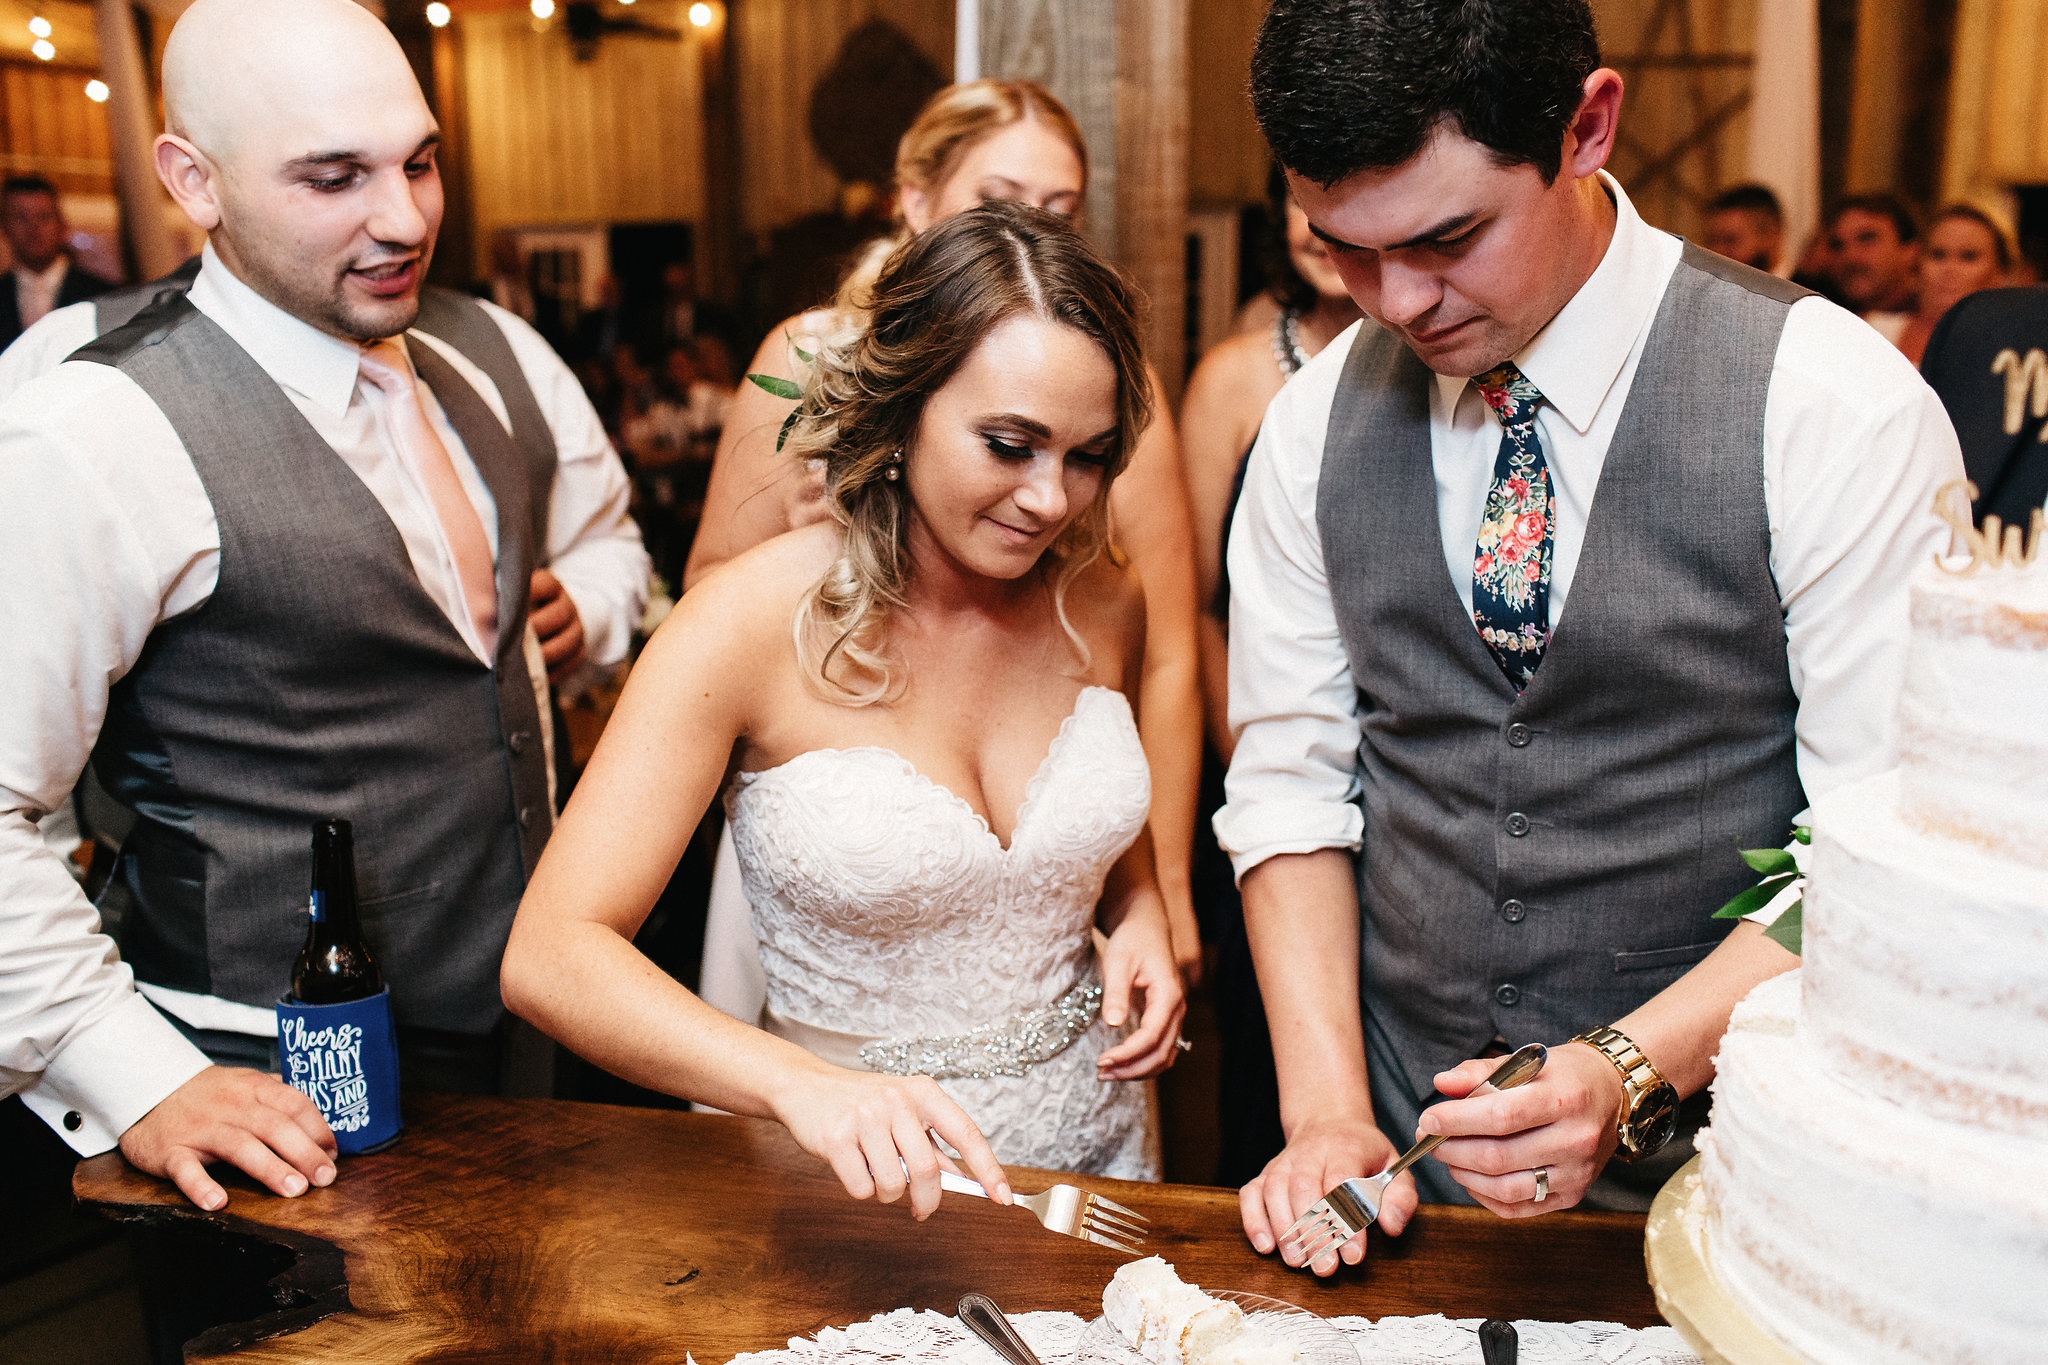 Ashley&NathanMarried2017-11-10at19.26.55PM134.jpg